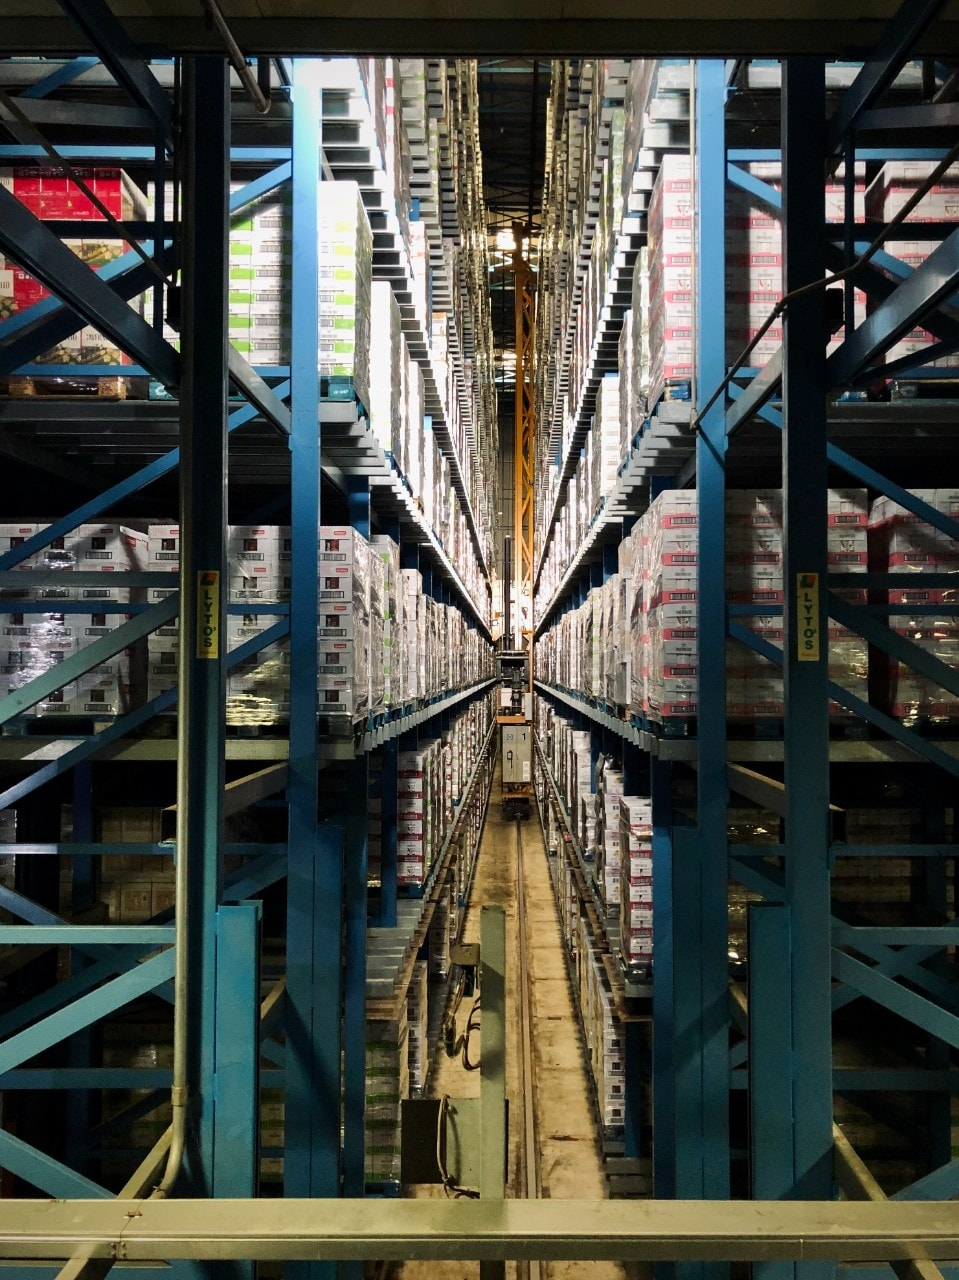 An automated warehouse with high shelving